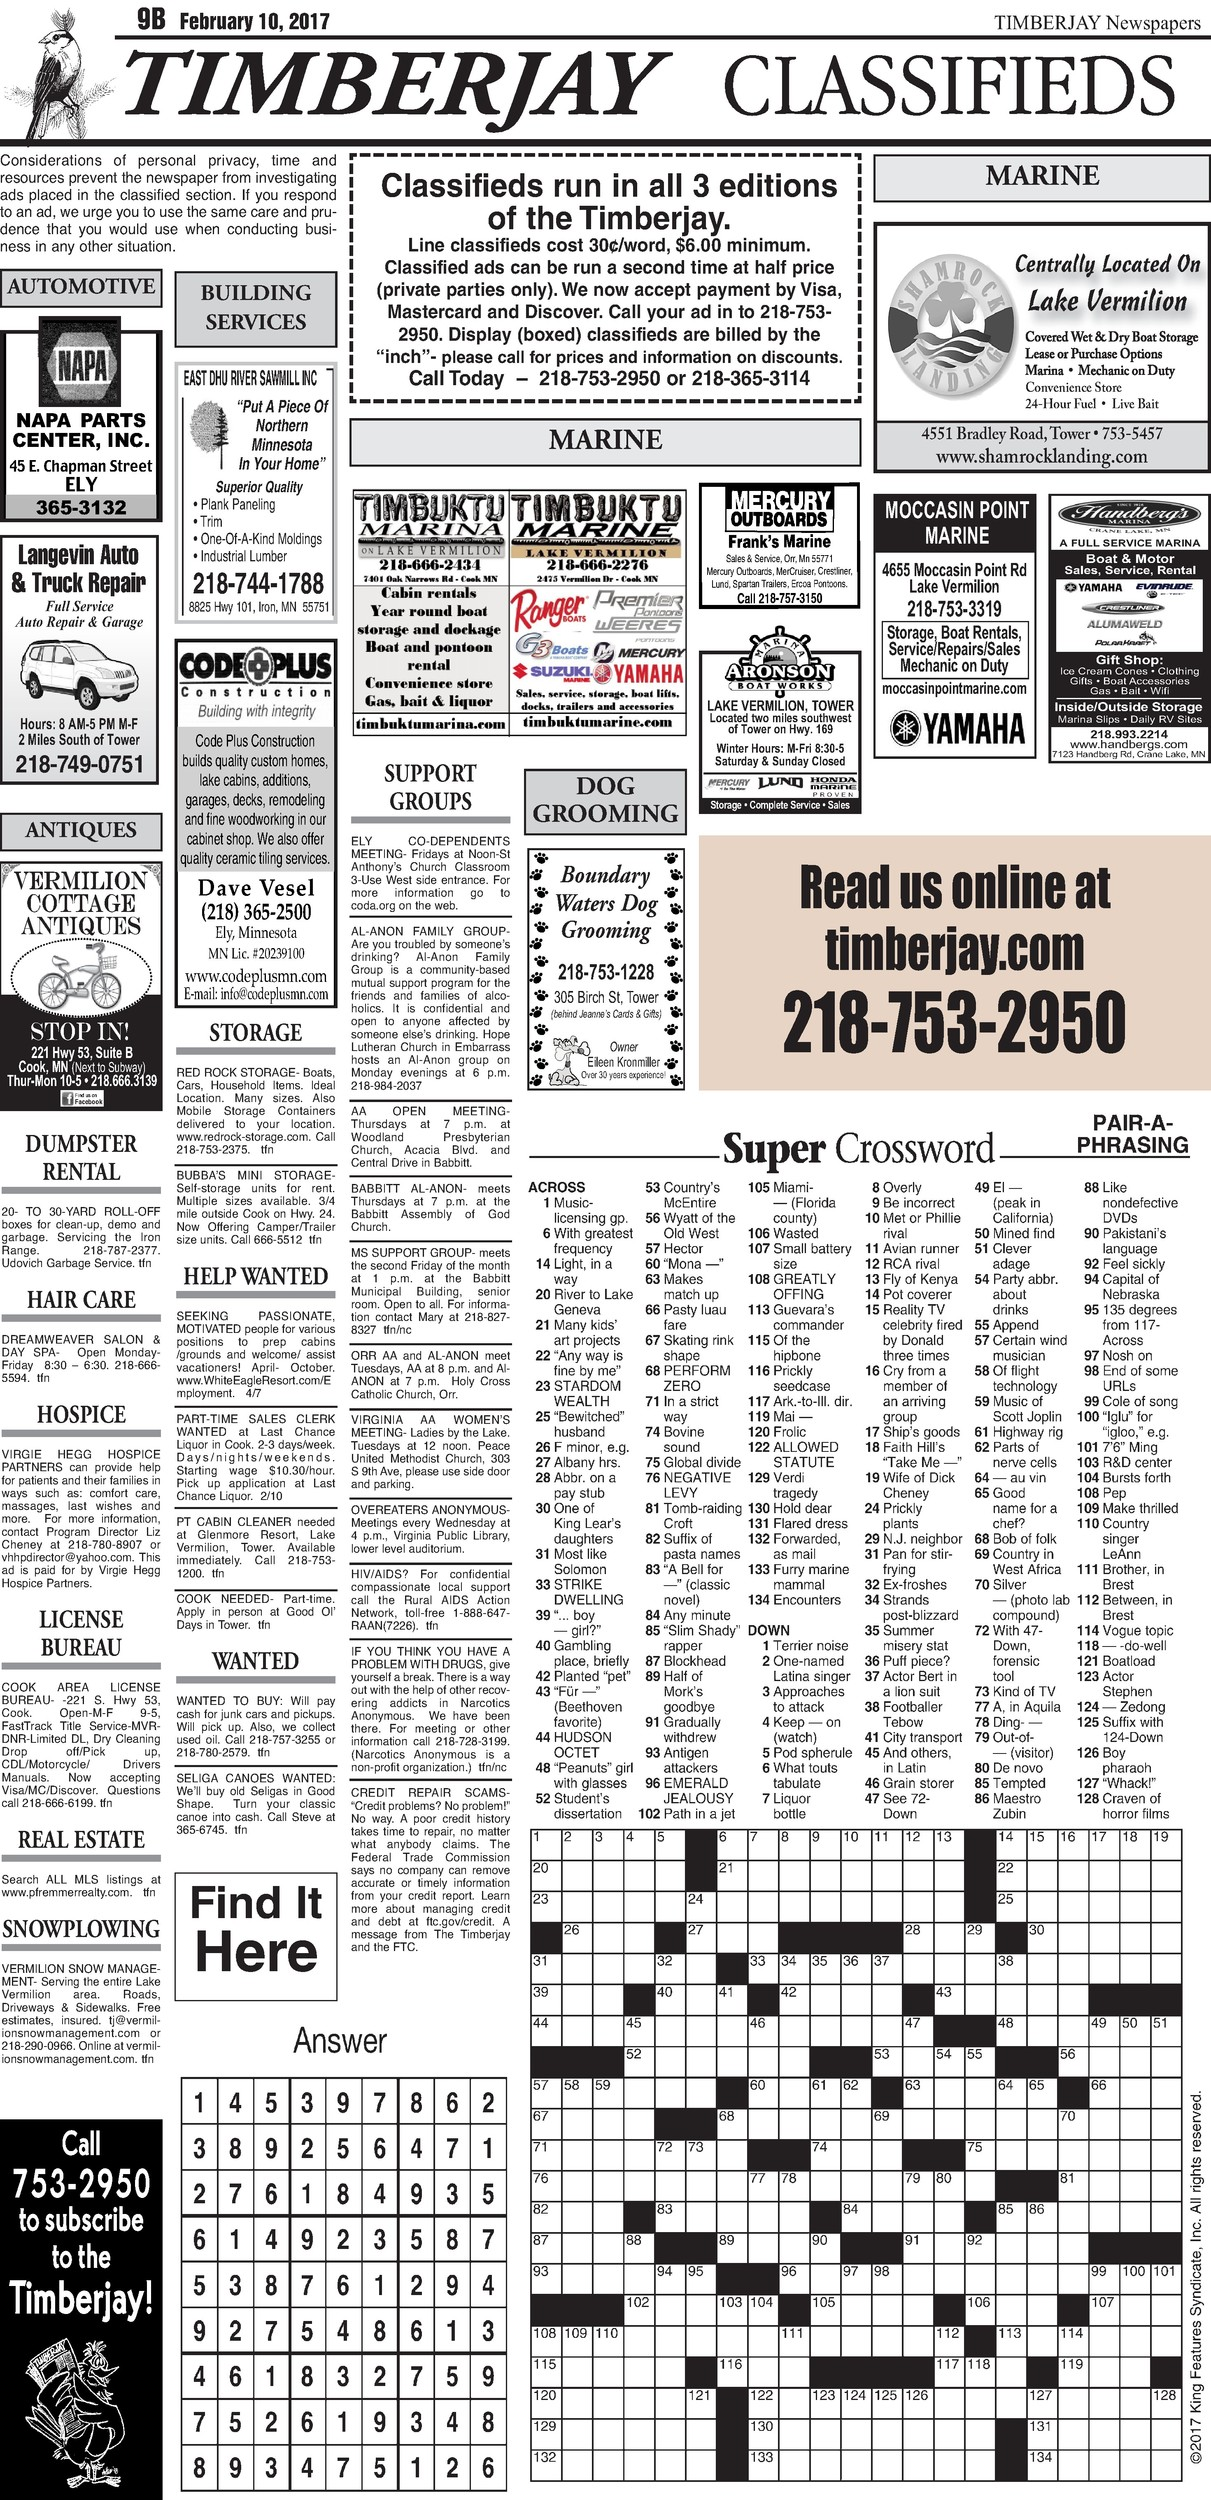 Click here for the legal notices and classifieds on page B9